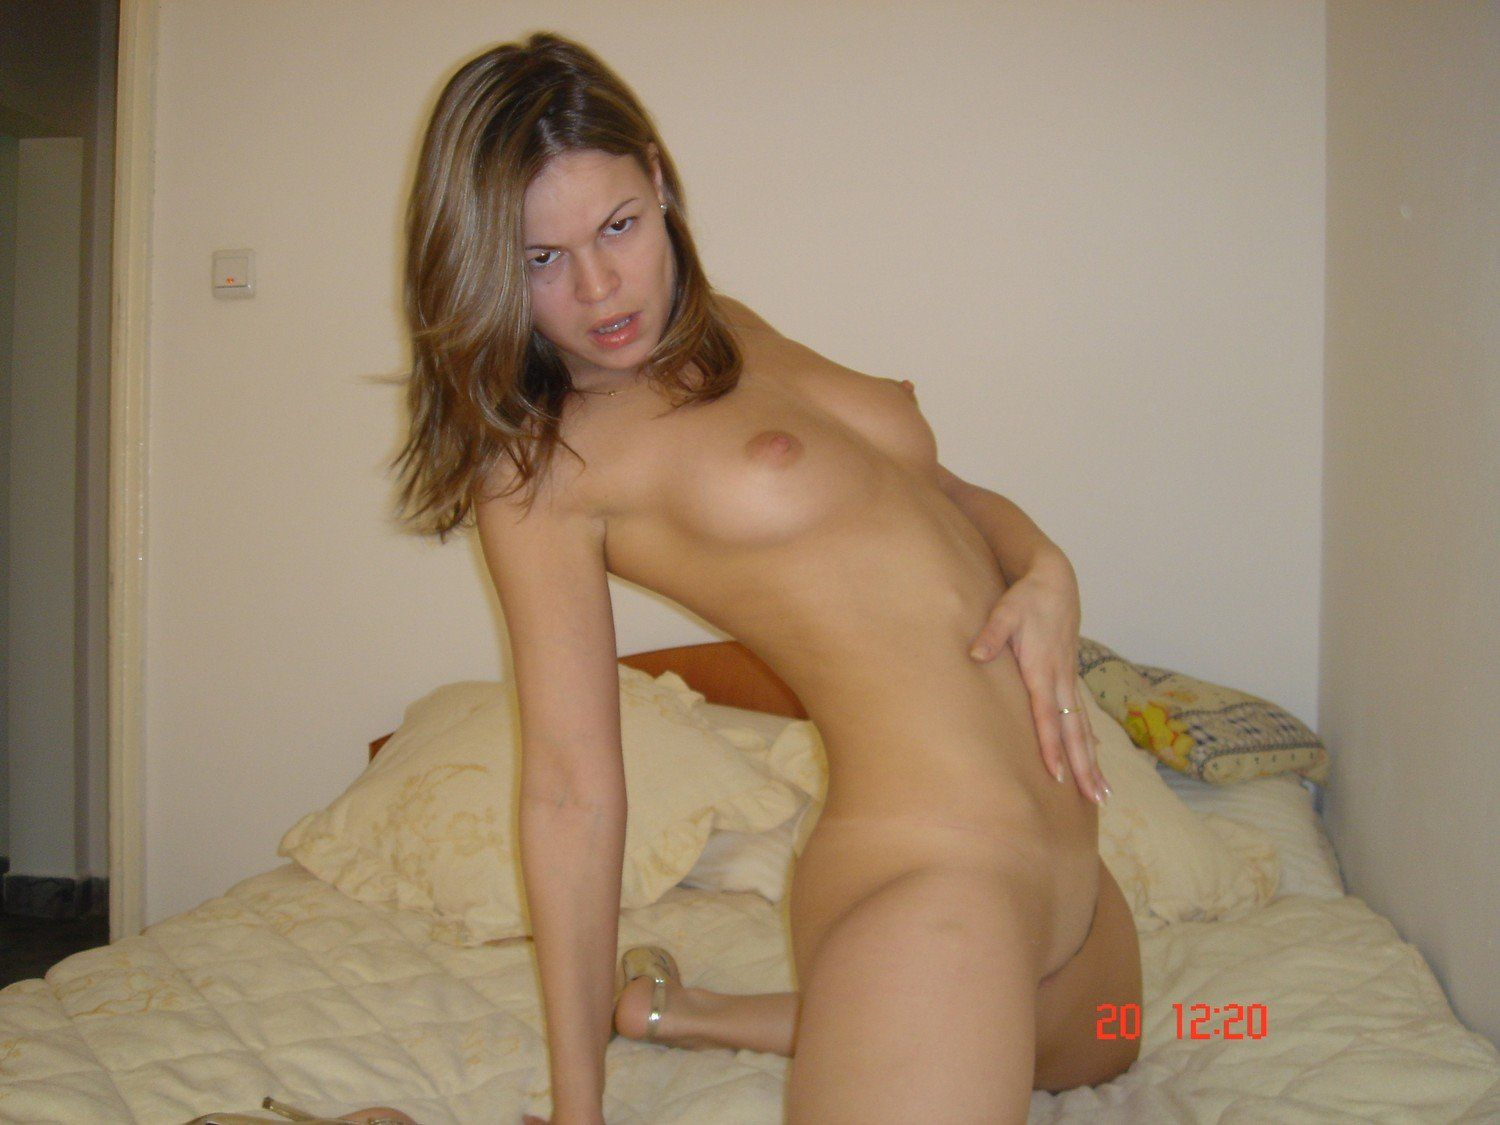 Russian order mail nude brides woman